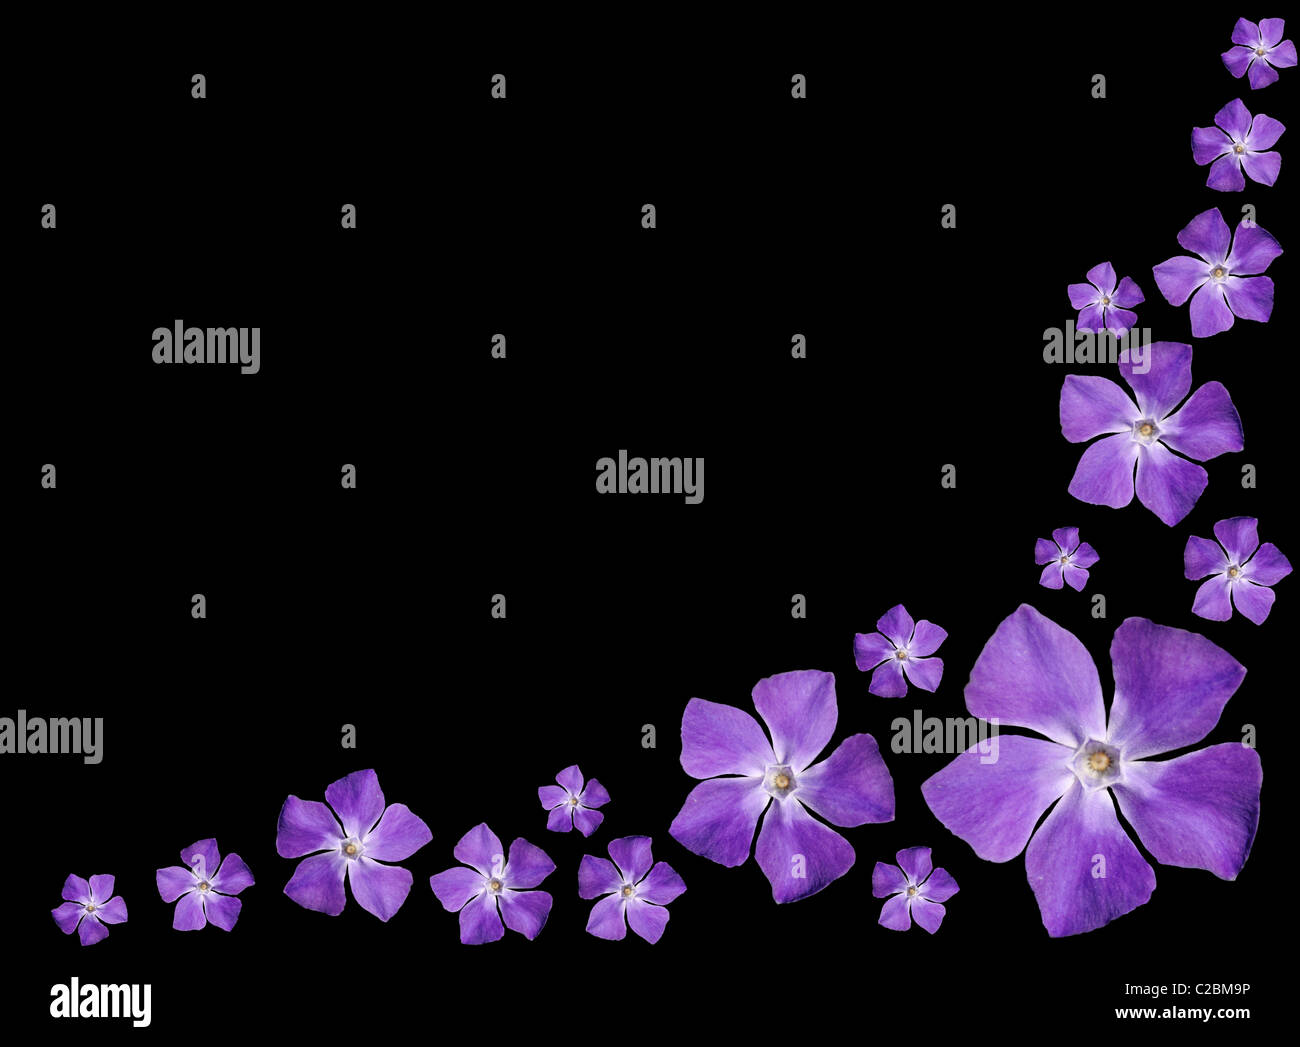 periwinkle background.html